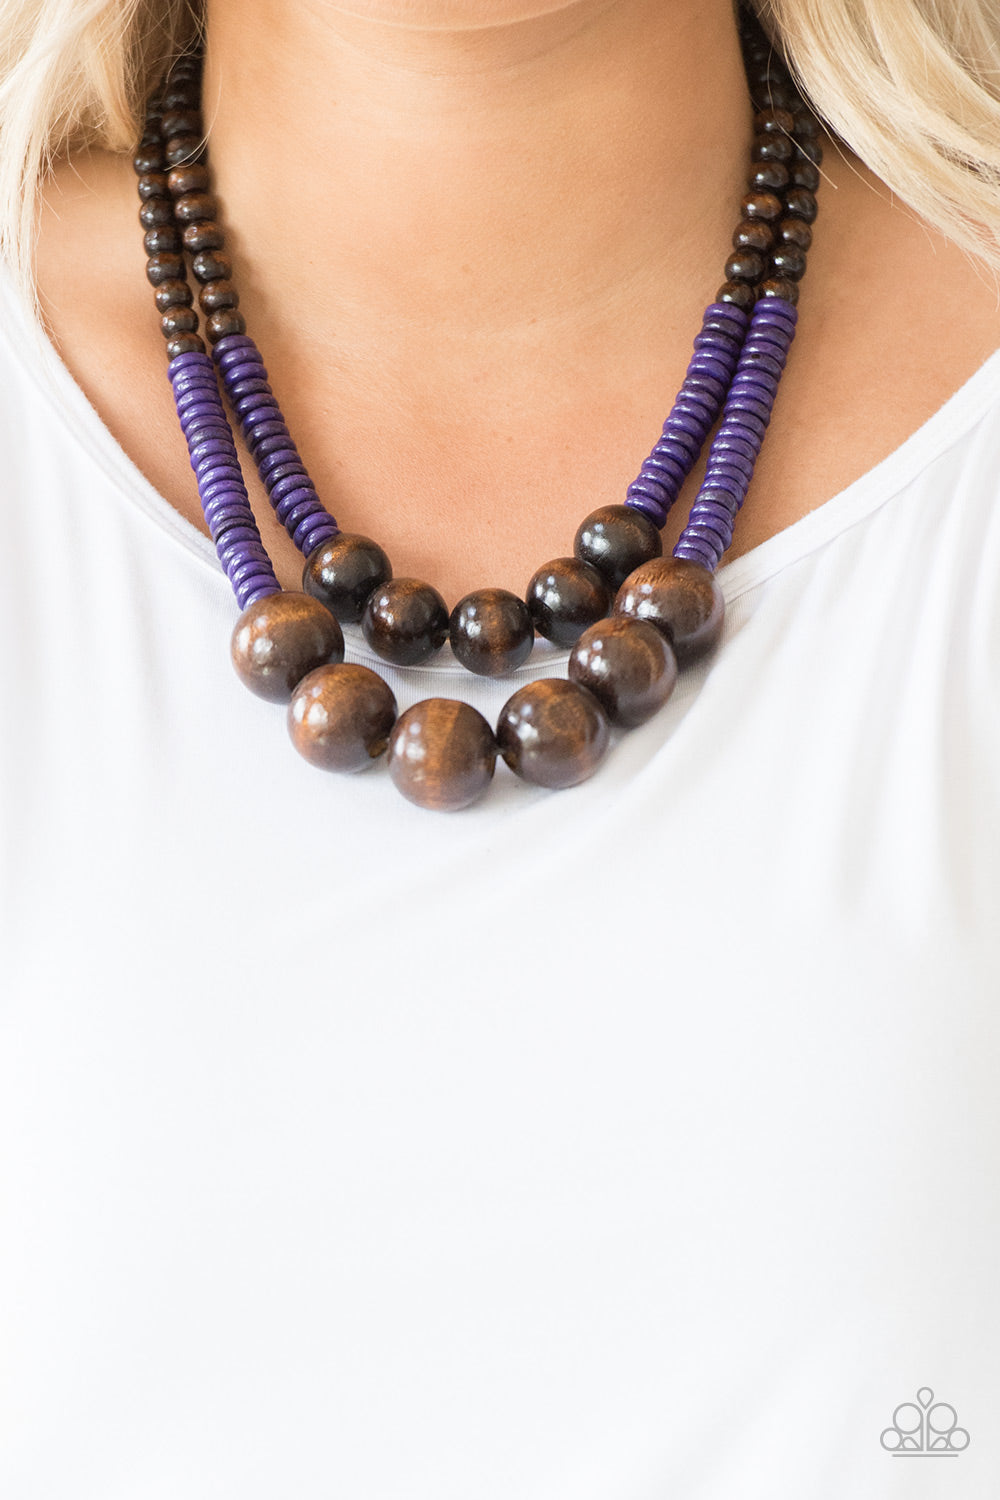 Paparazzi Accessories Cancun Castaway - Purple Wood Necklaces - Lady T Accessories